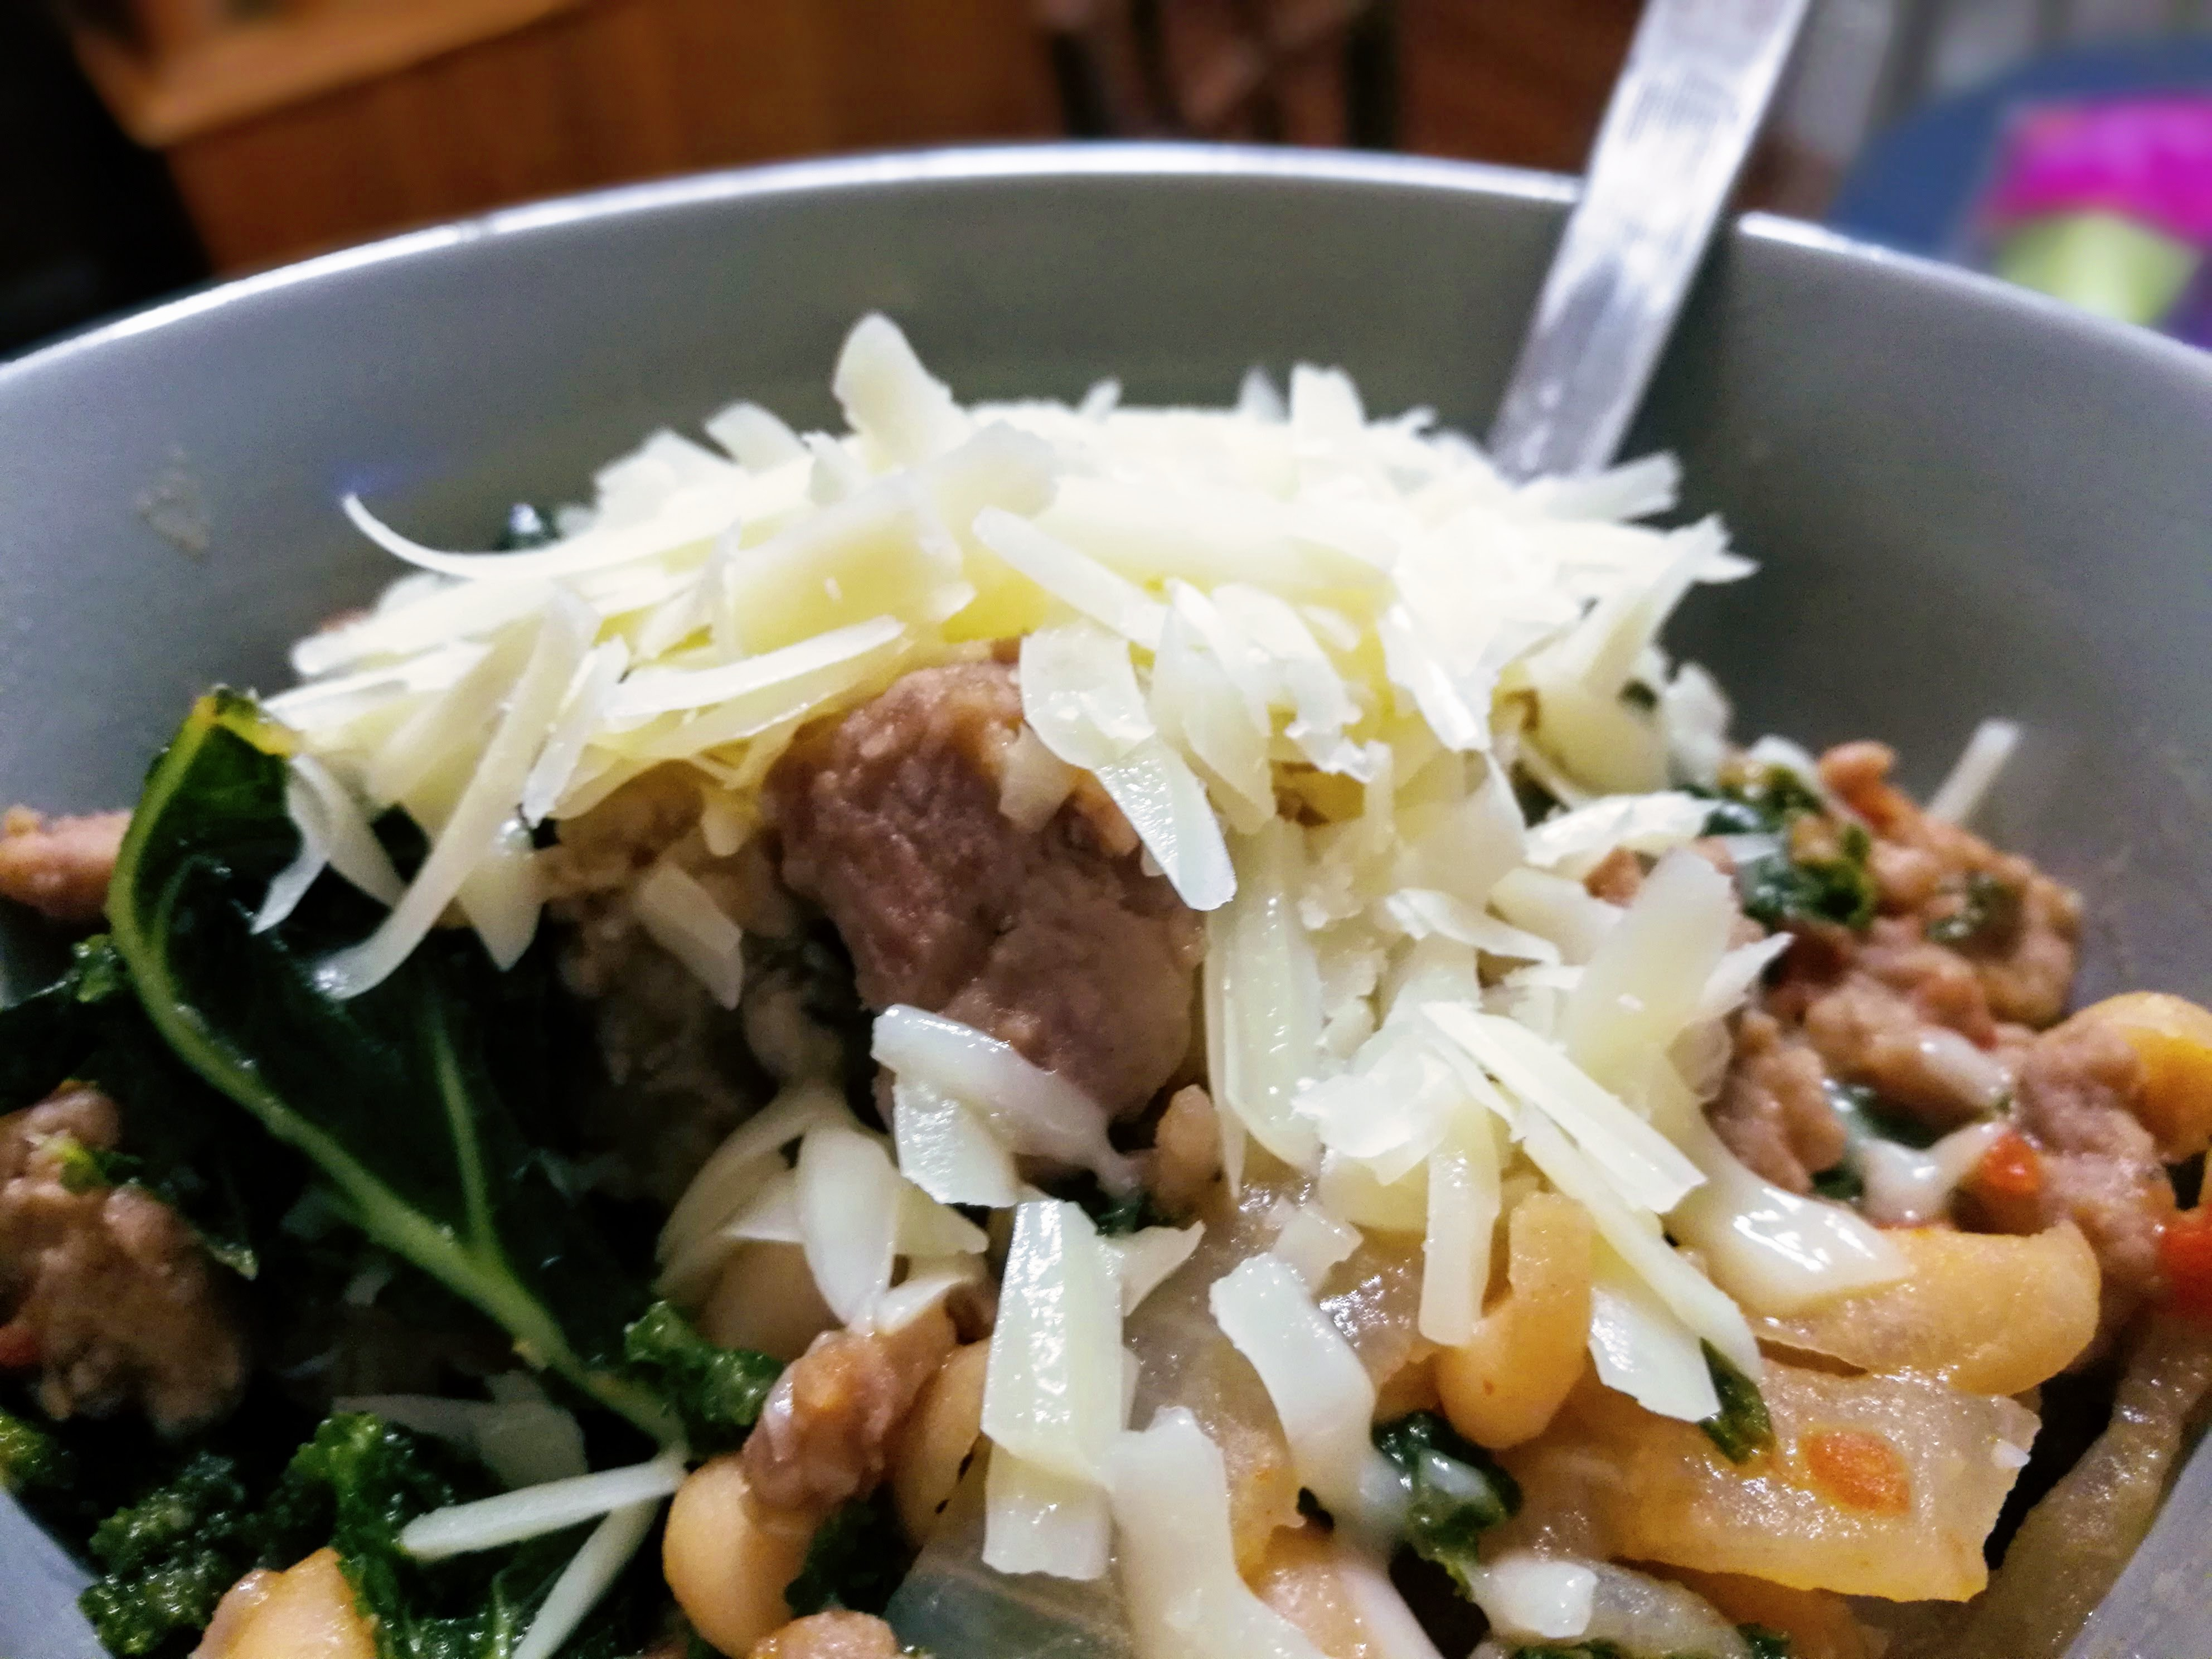 Mahhkk's sausage kale and beans